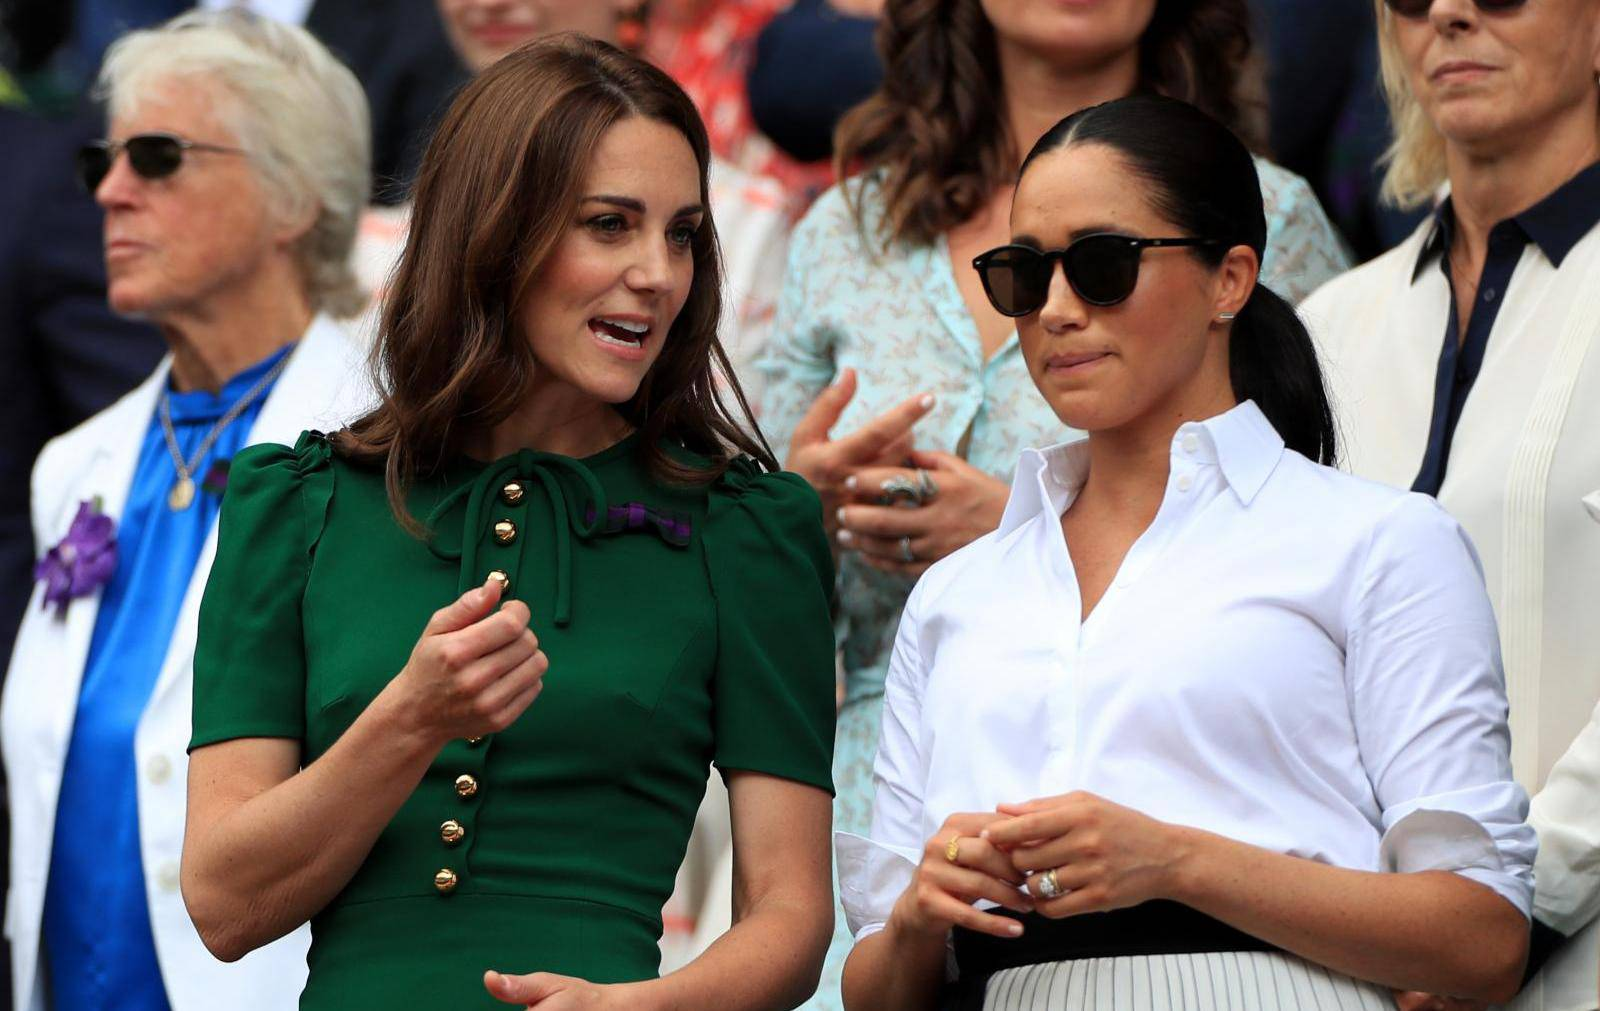 Wimbledon 2019 - Day Twelve - The All England Lawn Tennis and Croquet Club